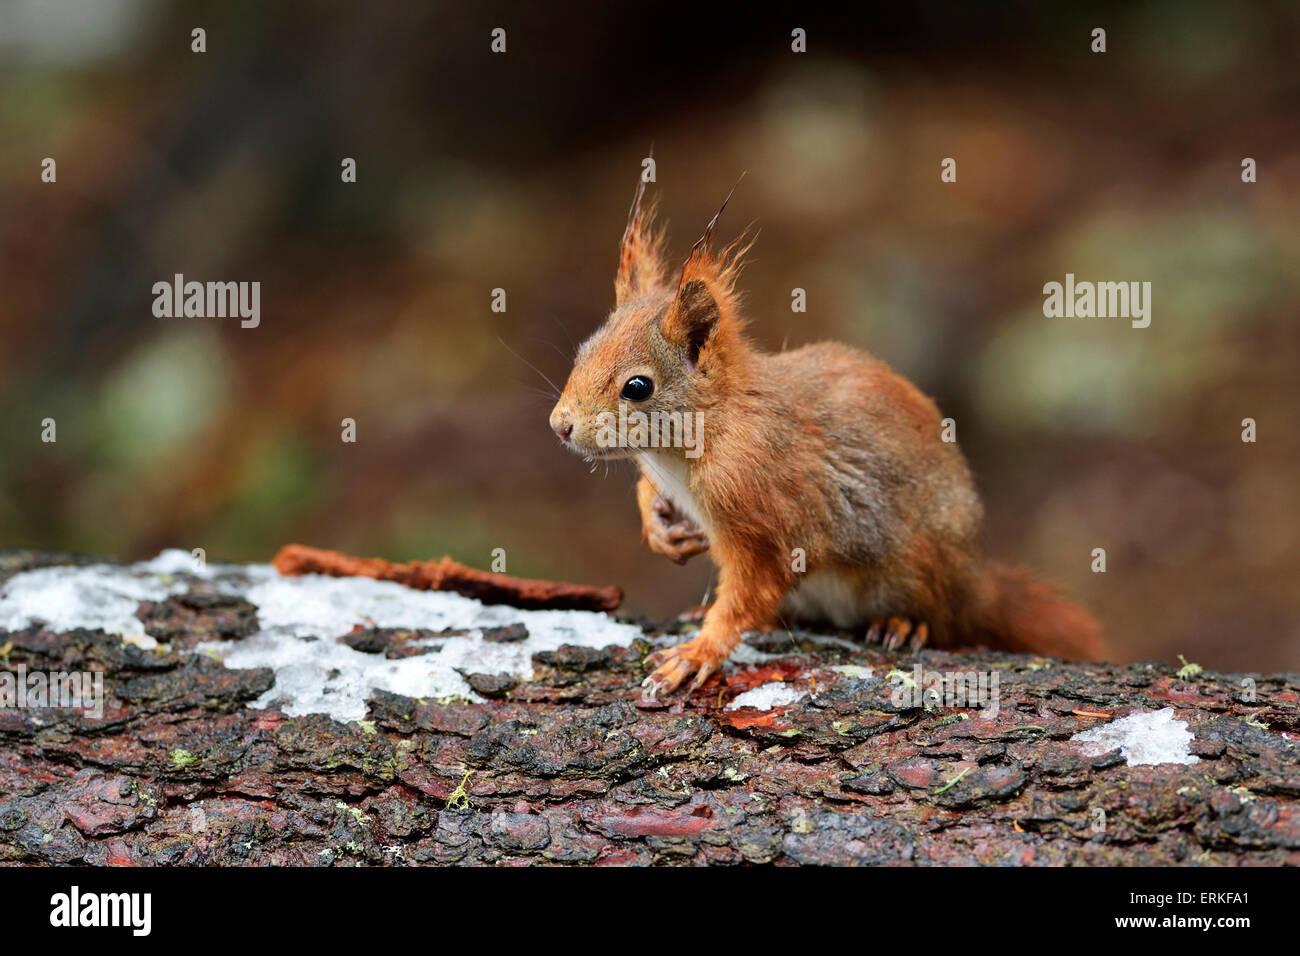 Squirrel (Sciurus vulgaris) on tree trunk, Canton of Graubünden, Switzerland - Stock Image